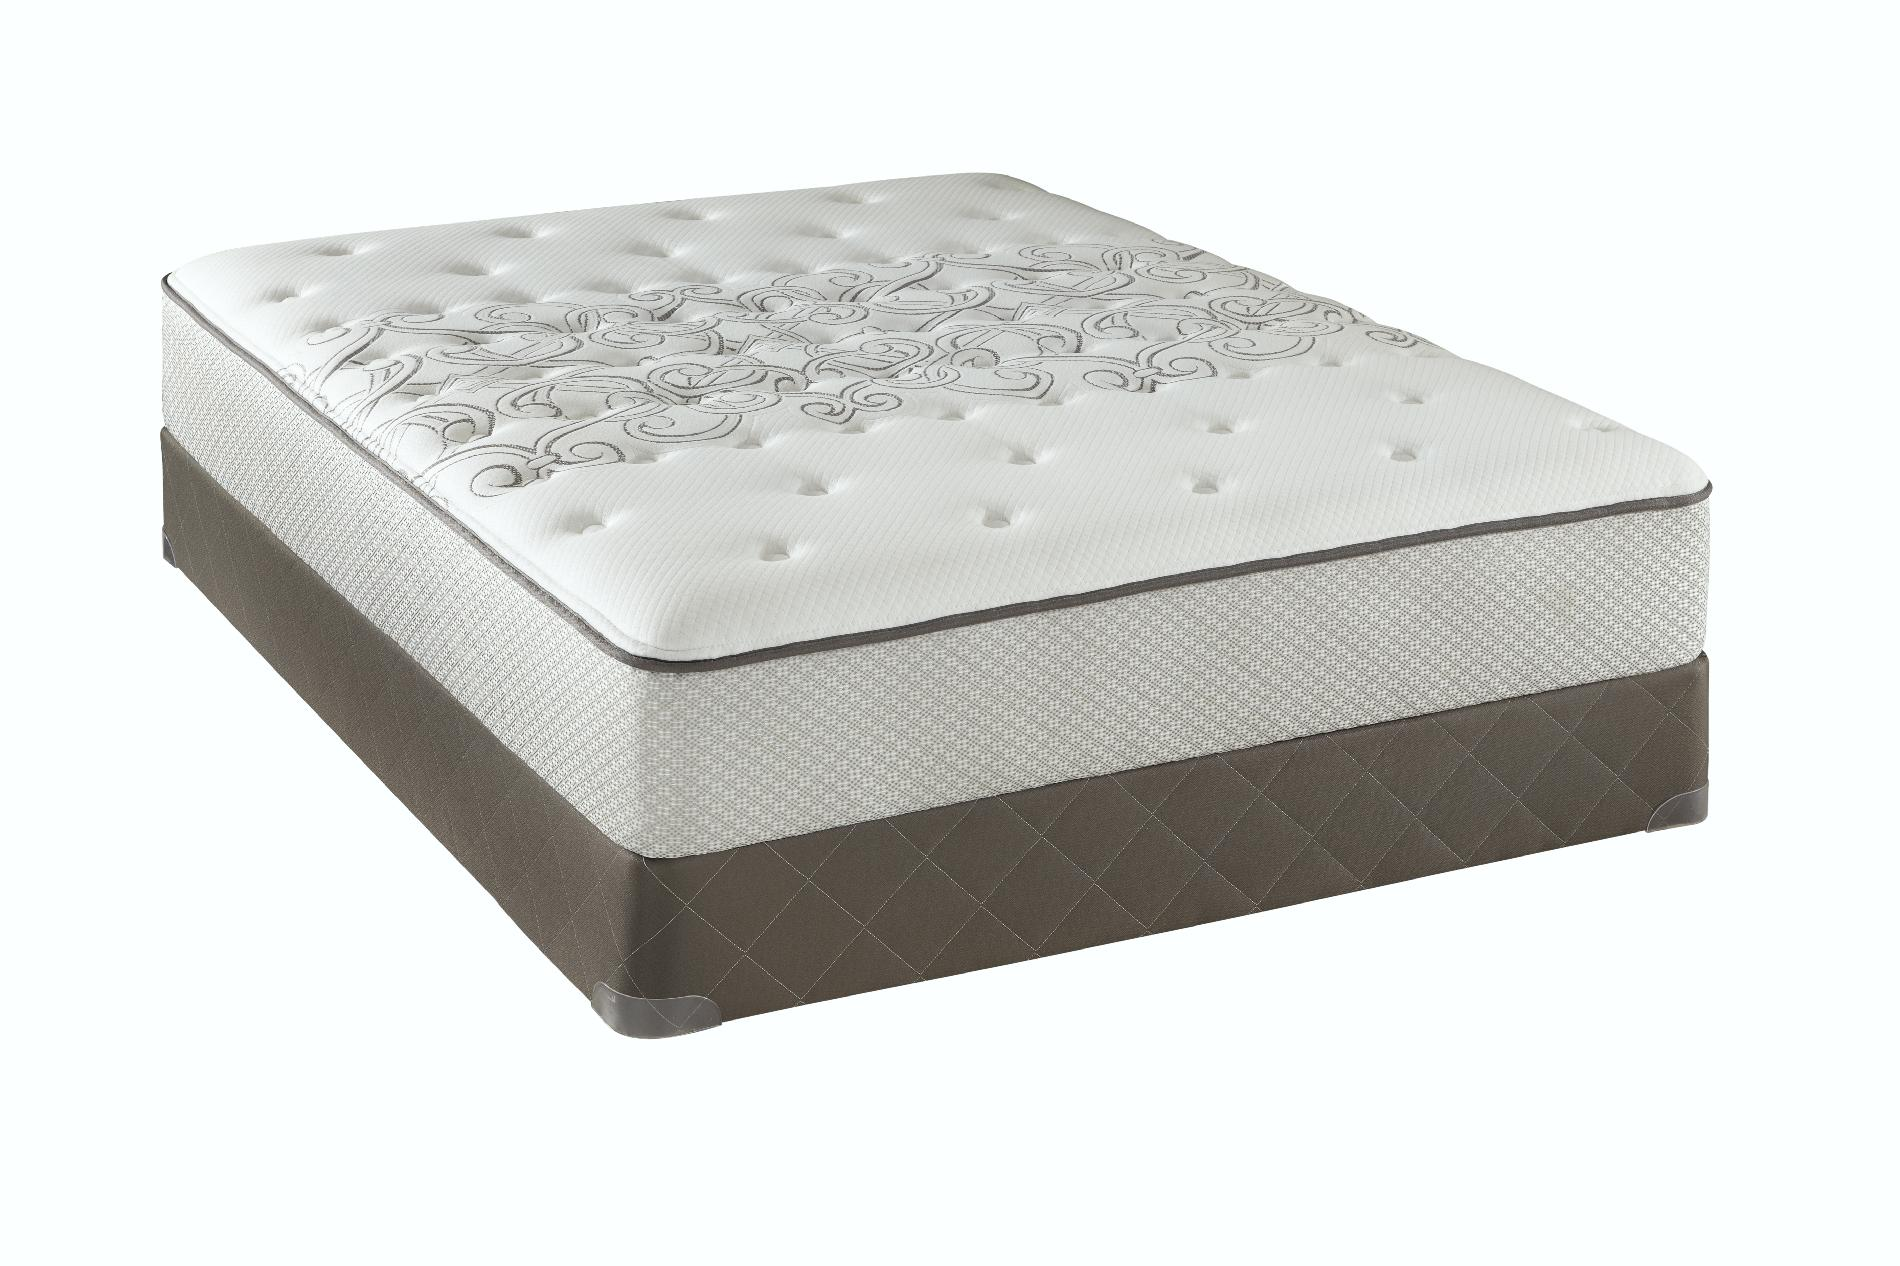 Sealy Posturepedic Cookshire Ti2, Plush, Queen Mattress Only